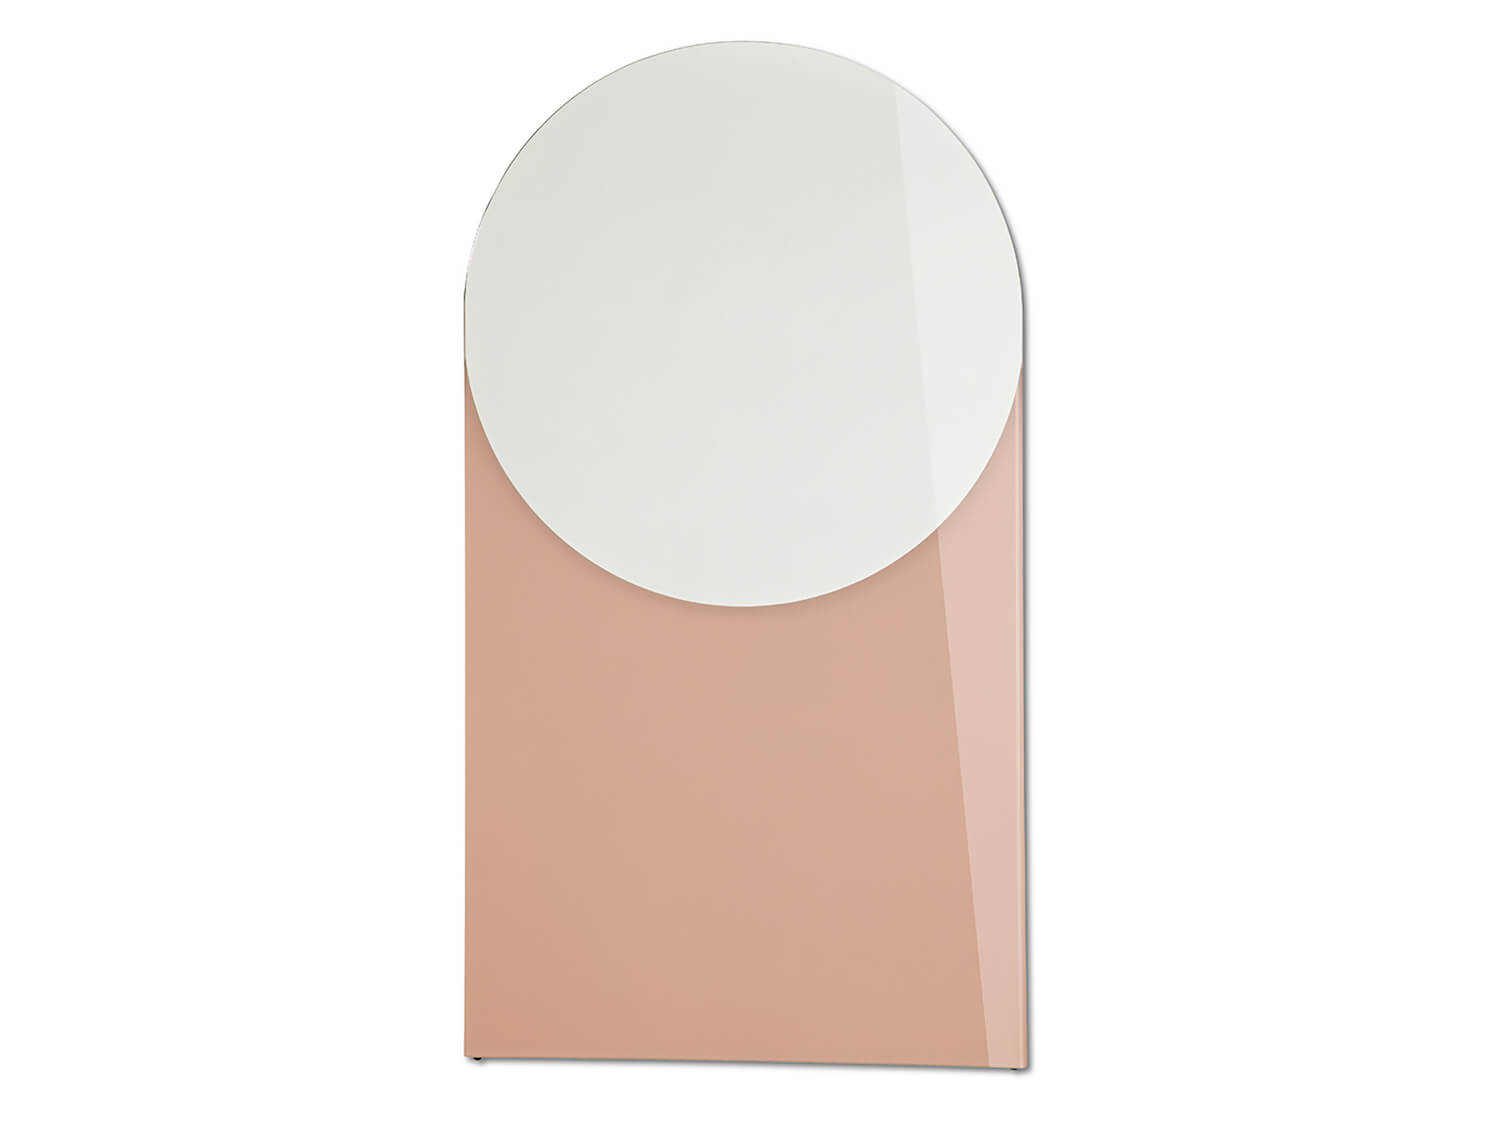 est living get the look doll house hay shapes mirror